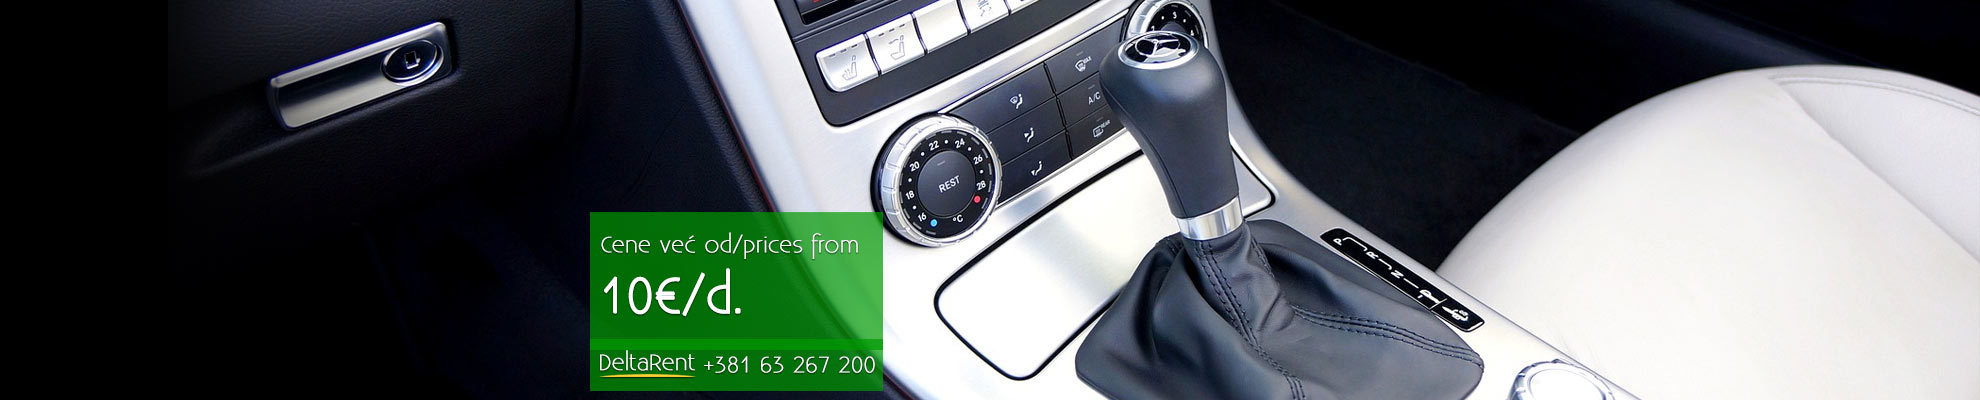 Rent a car, cars with automatic transmission, car rental: DeltaRent Belgrade